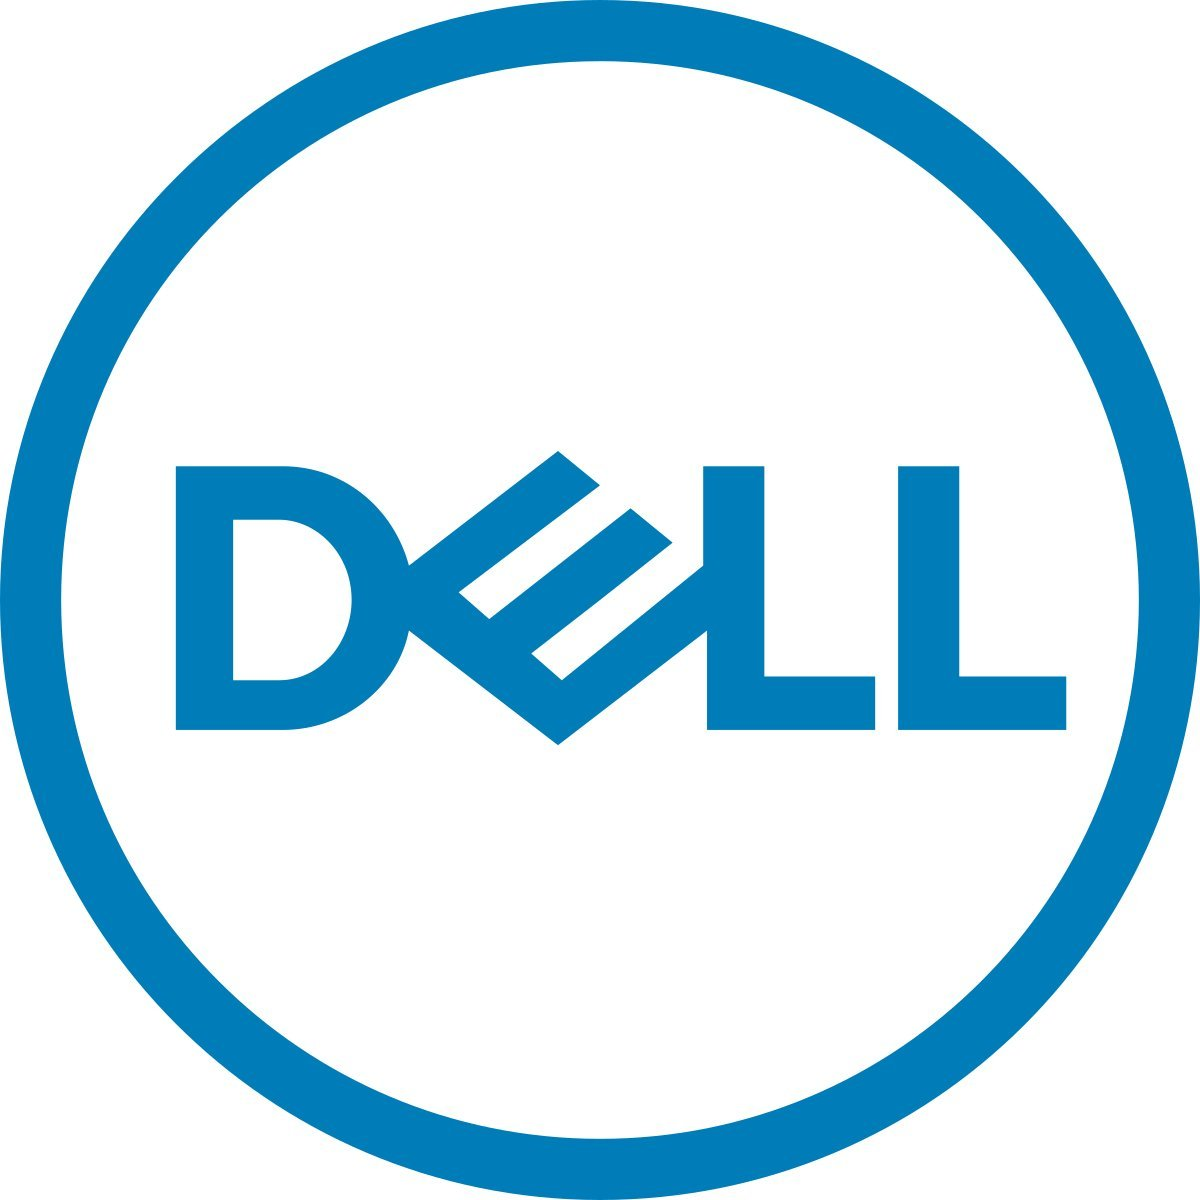 Dell Computer XKP2P Black Toner Cartridge 1250c/1350cnw/1355cn/1355cnw/C1760nw/C1765nf/C1765nfw Color Printers